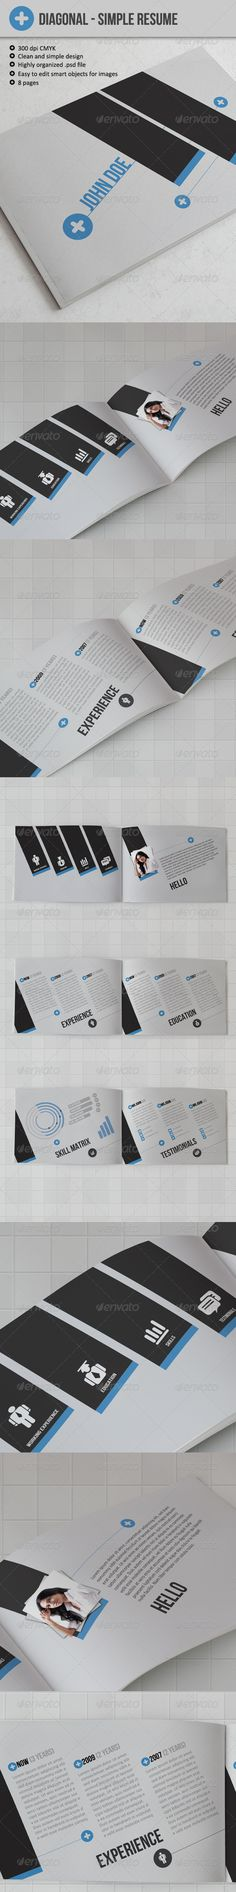 Diagonal - Resume or CV - GraphicRiver Item for Sale